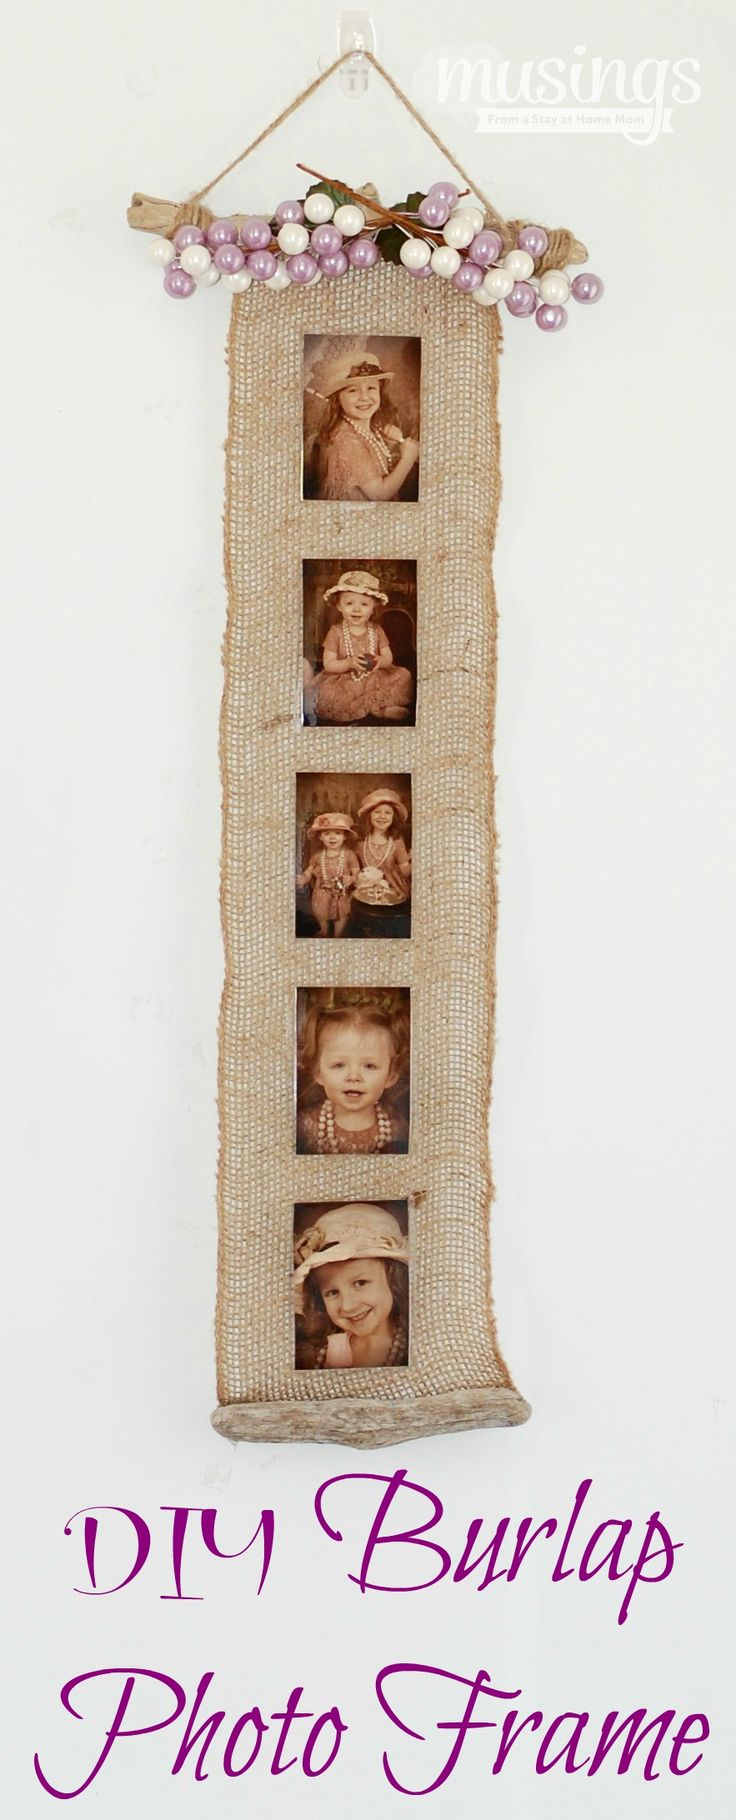 Burlap Photo Frame - beautiful decoration for any home, plus a great homemade gift idea                                                                                                                                                     Más